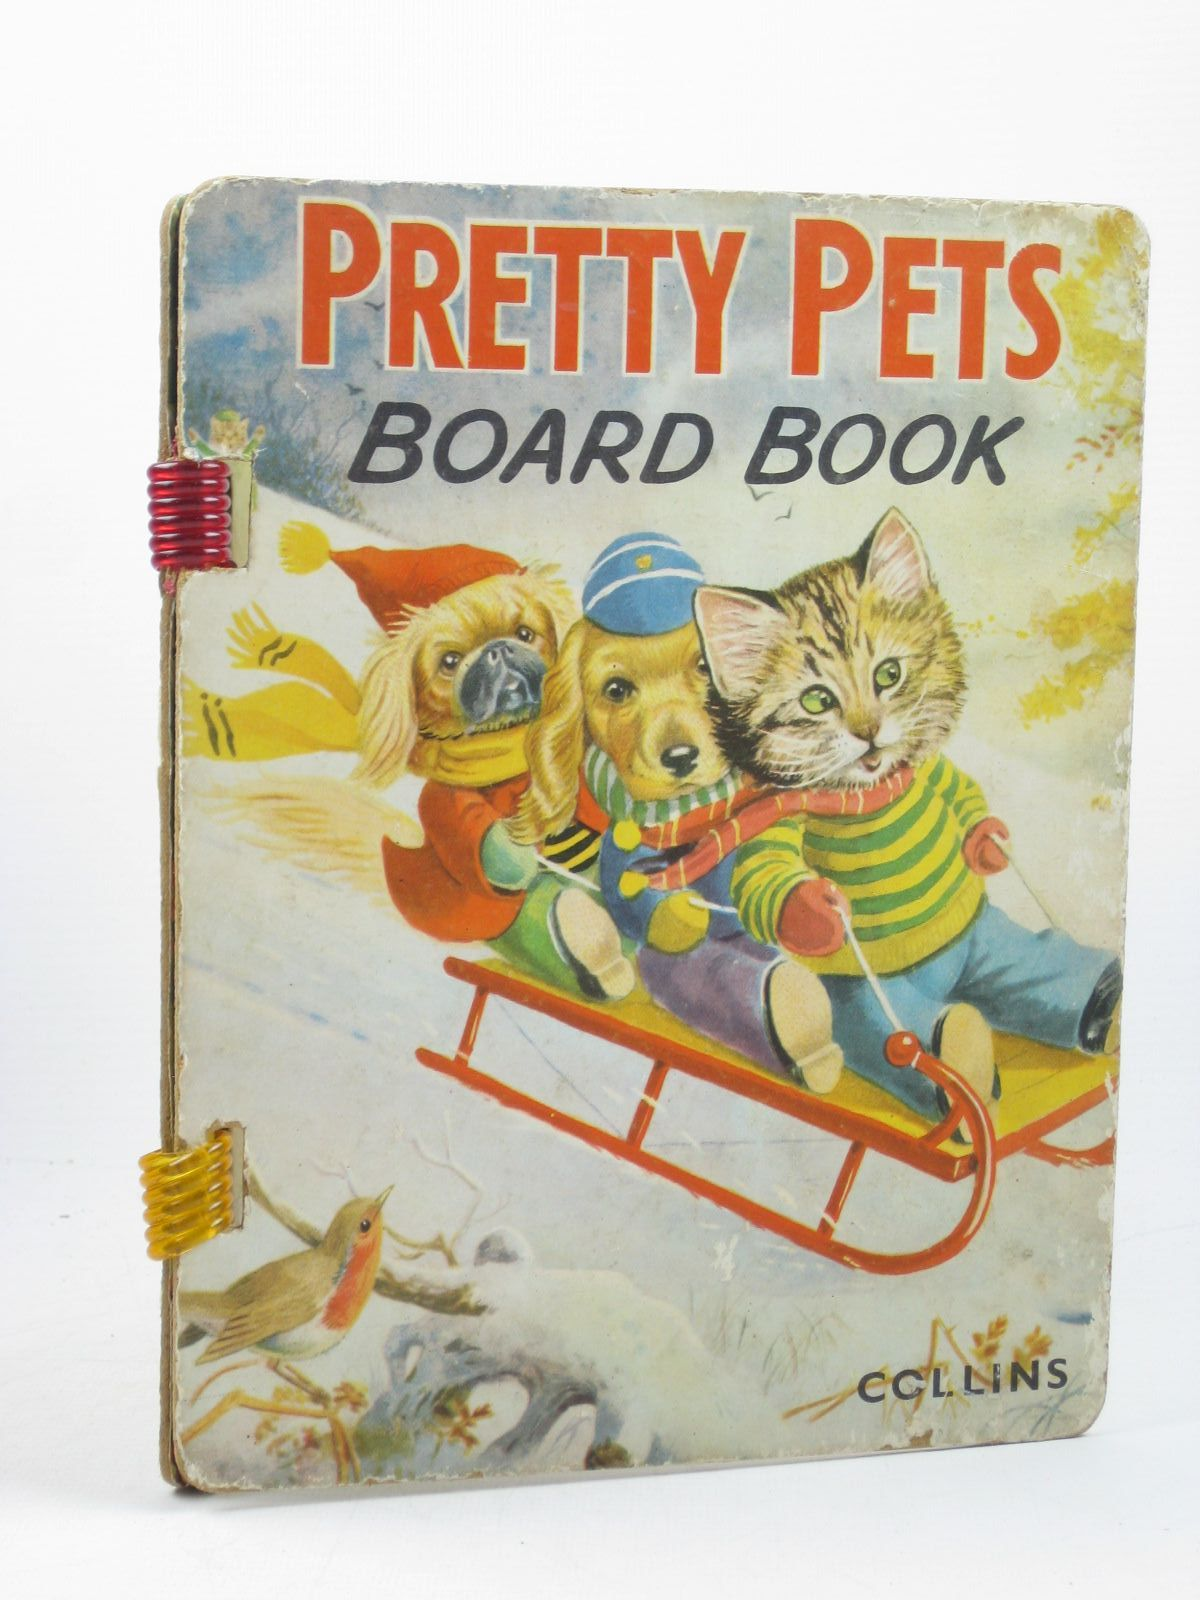 Photo of PRETTY PETS BOARD BOOK published by Collins (STOCK CODE: 1502532)  for sale by Stella & Rose's Books